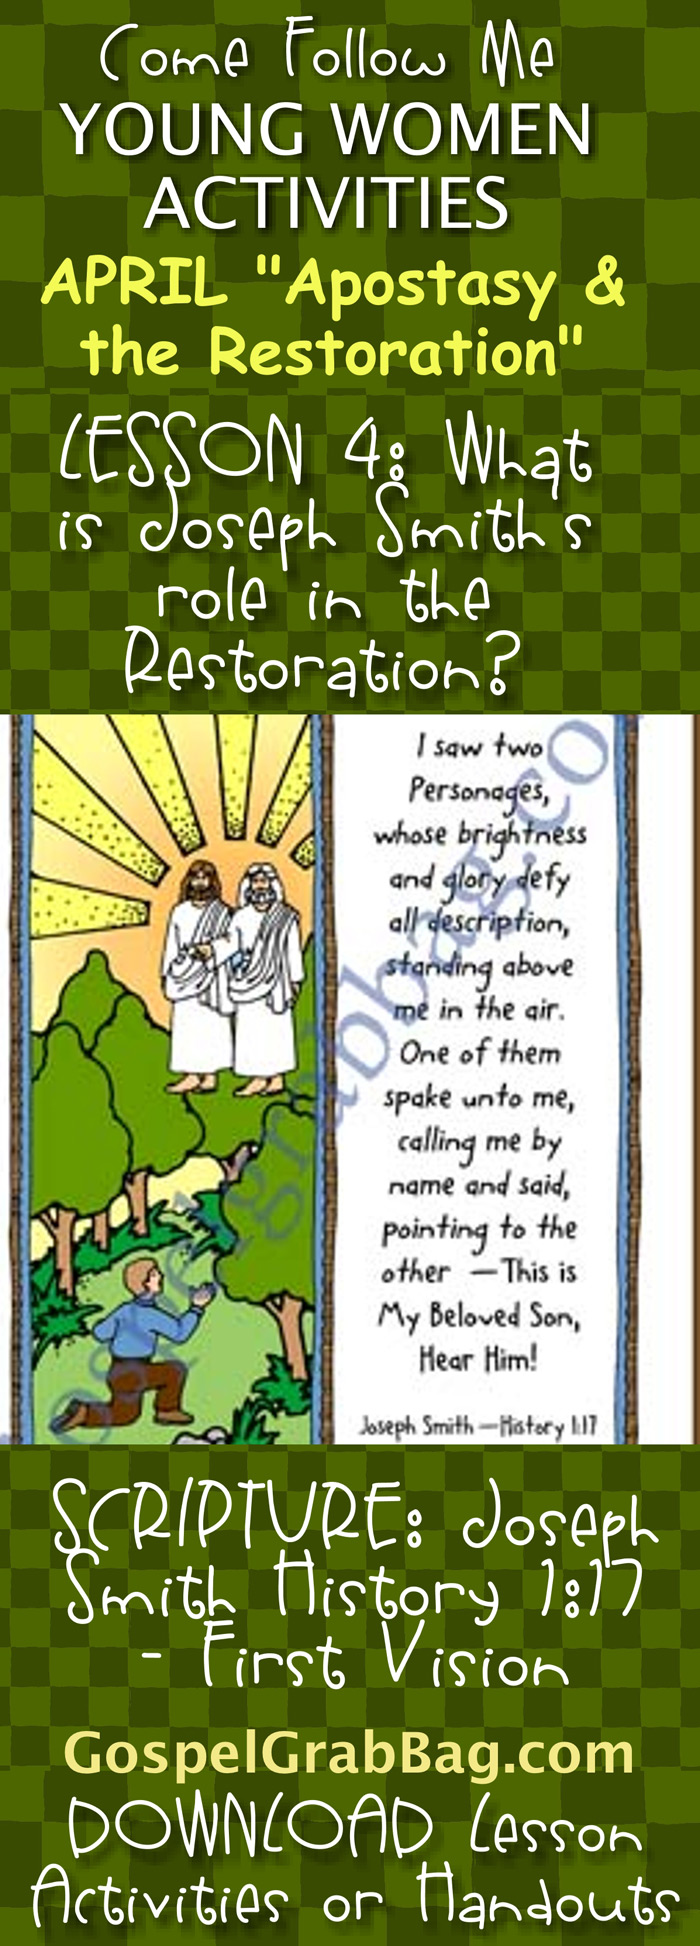 """RESTORATION: Come Follow Me – LDS Young Women Activities, APRIL Theme: """"The Apostasy and the Restoration"""", LESSON 4: What was Joseph Smith's role in the Restoration? handout for every lesson, SCRIPTURE POSTER / CARDS: Joseph Smith History 1:17 – First Vision, download from gospelgrabbag.com"""